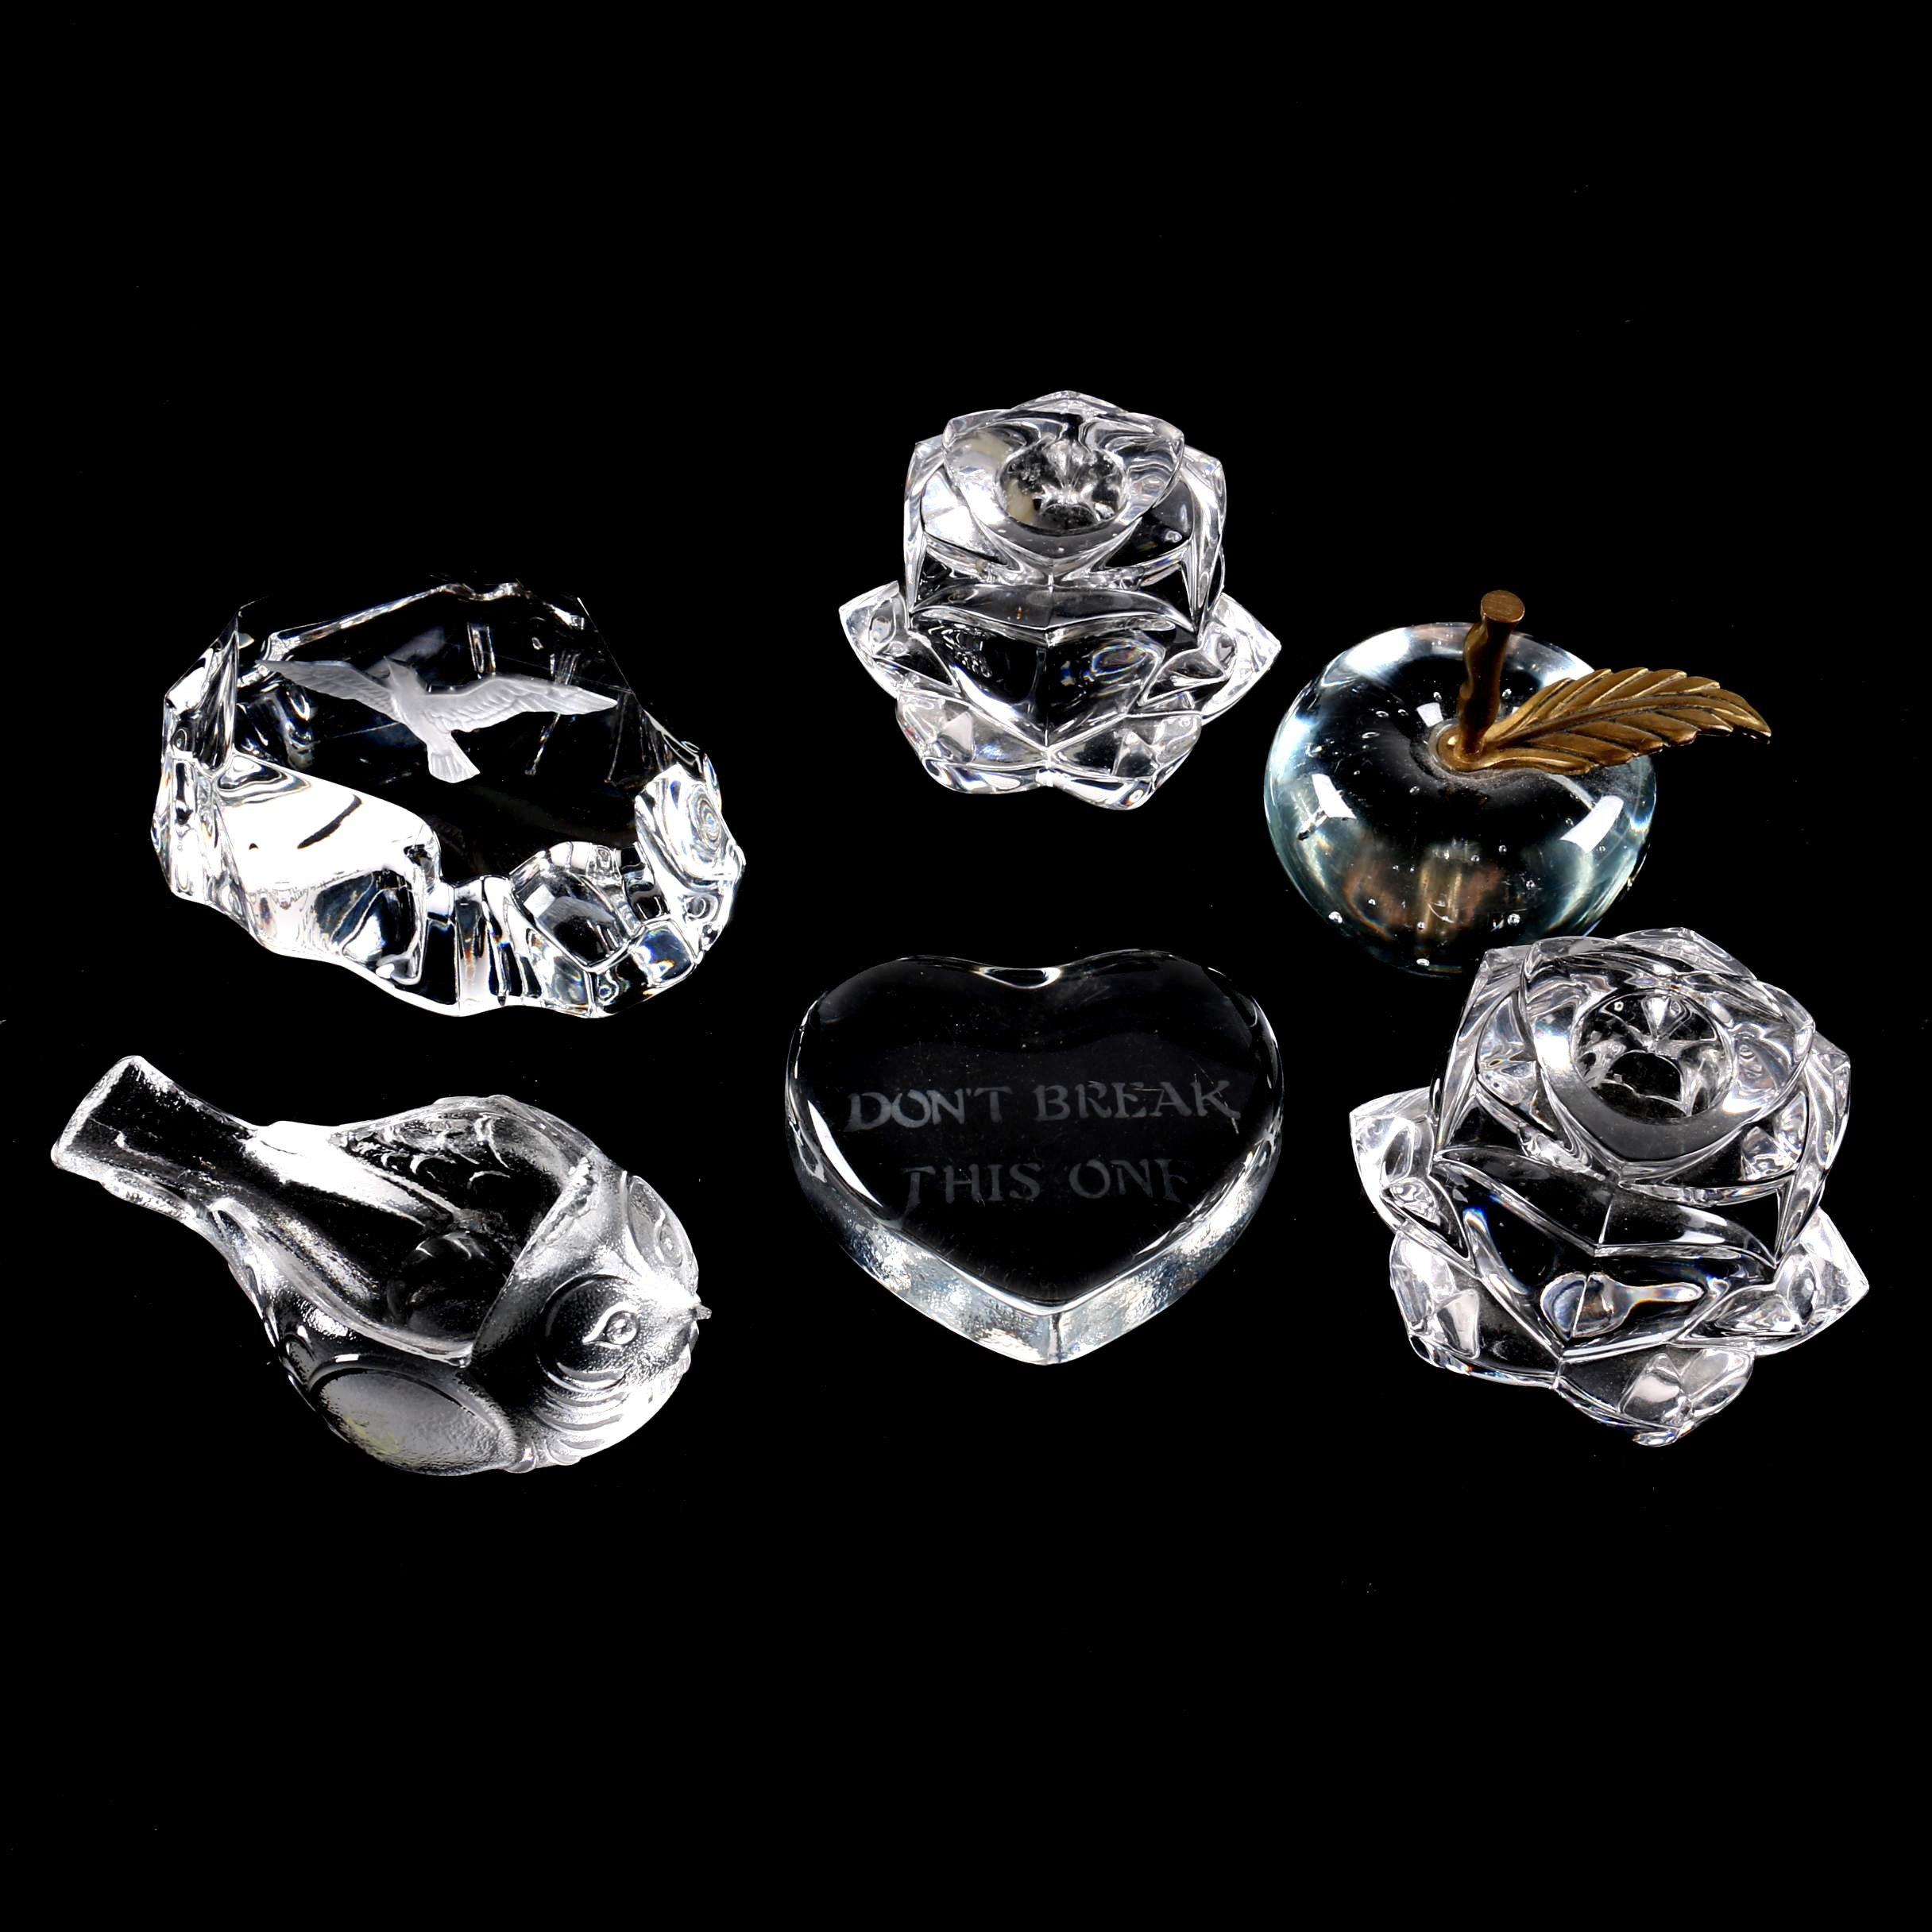 Crystal and Glass Paperweights and Candle Holders